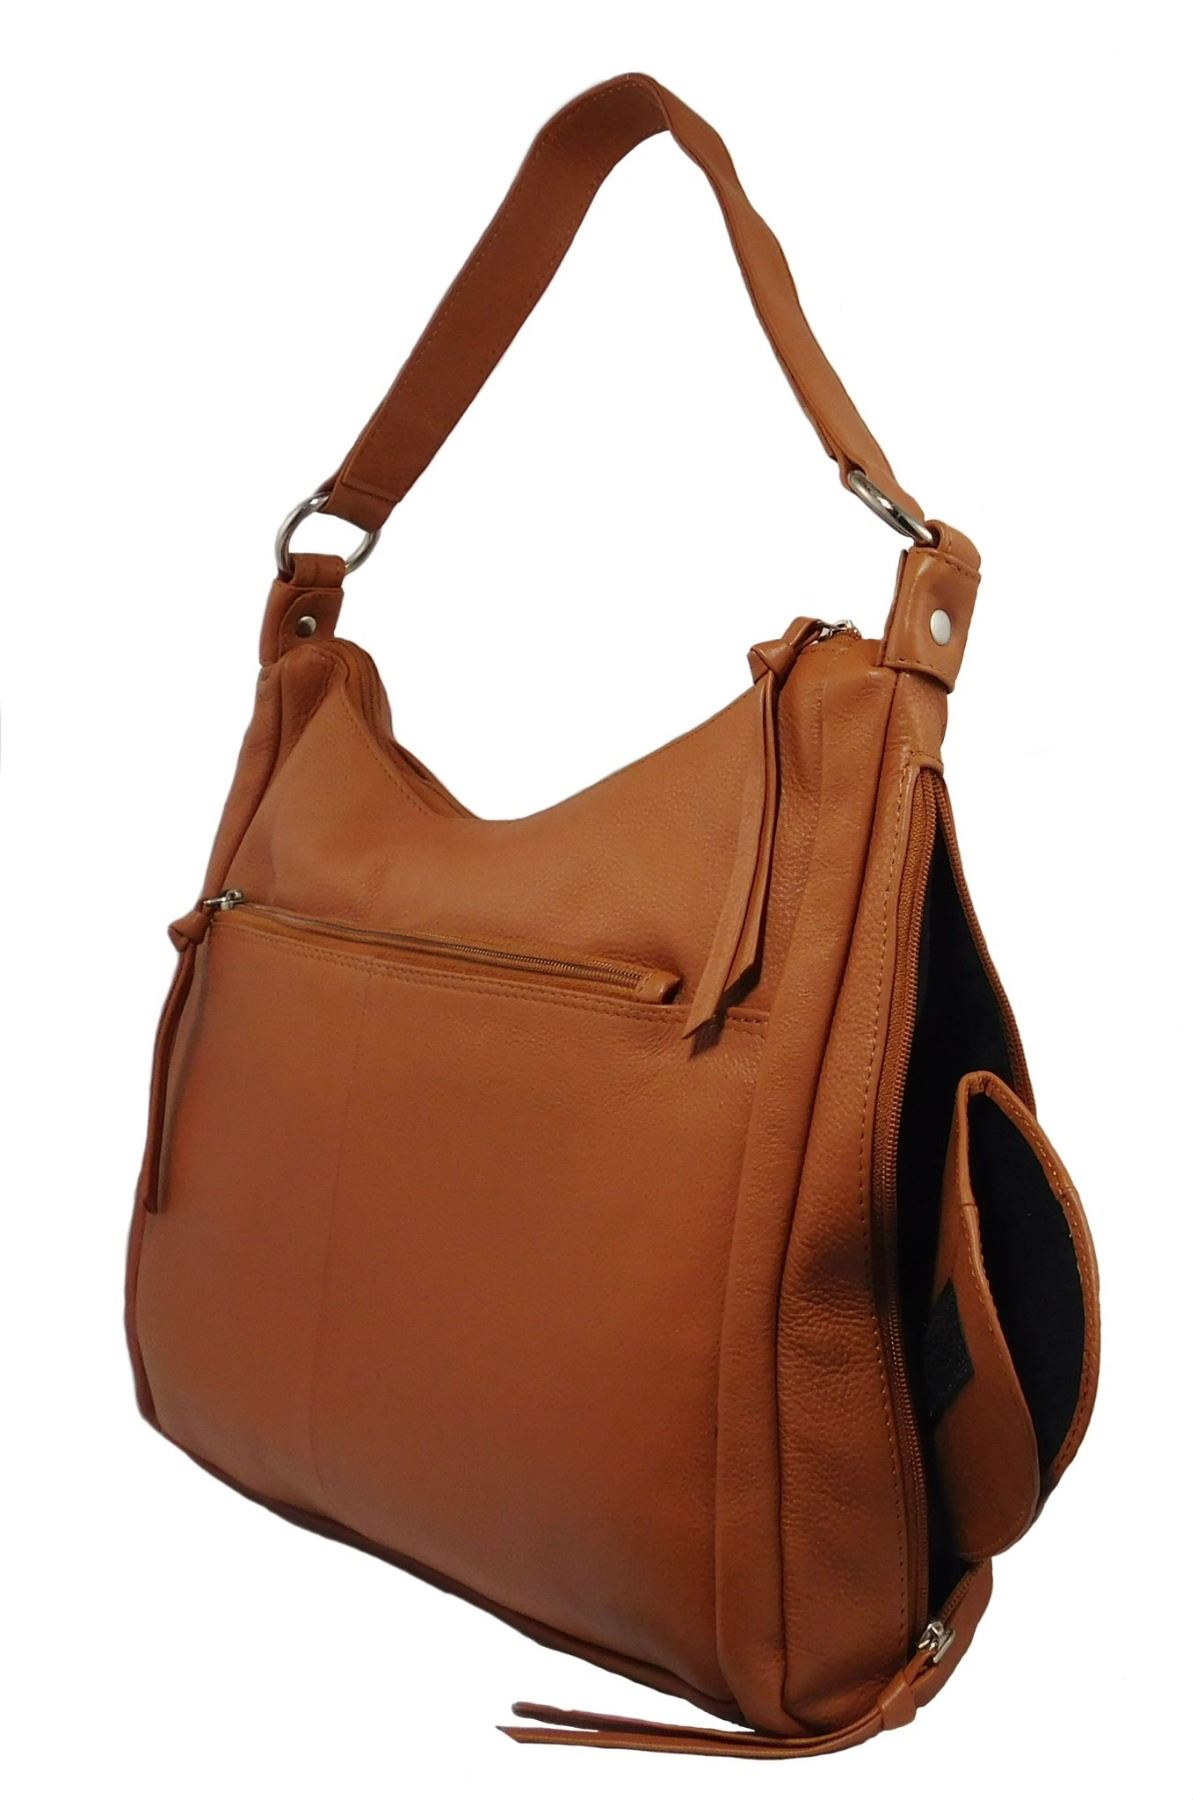 Paul & Taylor Ladies Leather Concealed Carry Purse (Camel)